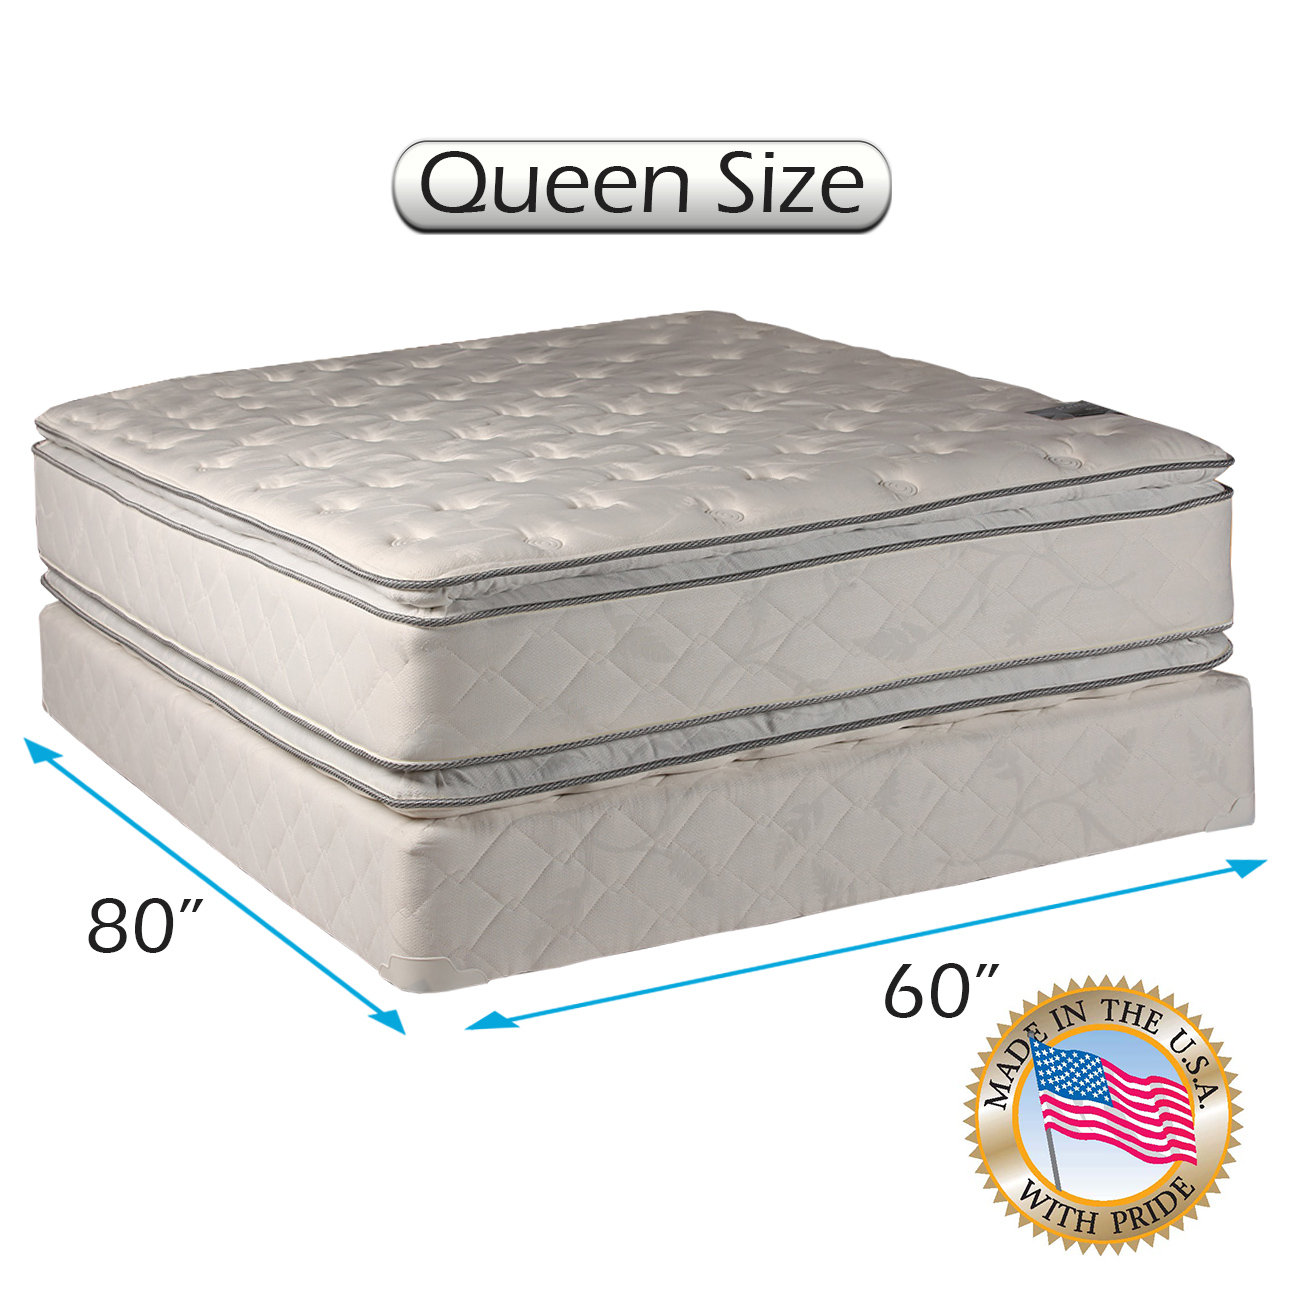 Serenity (Queen Size) PillowTop - Medium Soft Mattress set Bed Frame Included Double-Sided Sleep System with Enhanced Cushion Support- Fully Assembled, Back Support, Longlasting by Dream Solutions USA